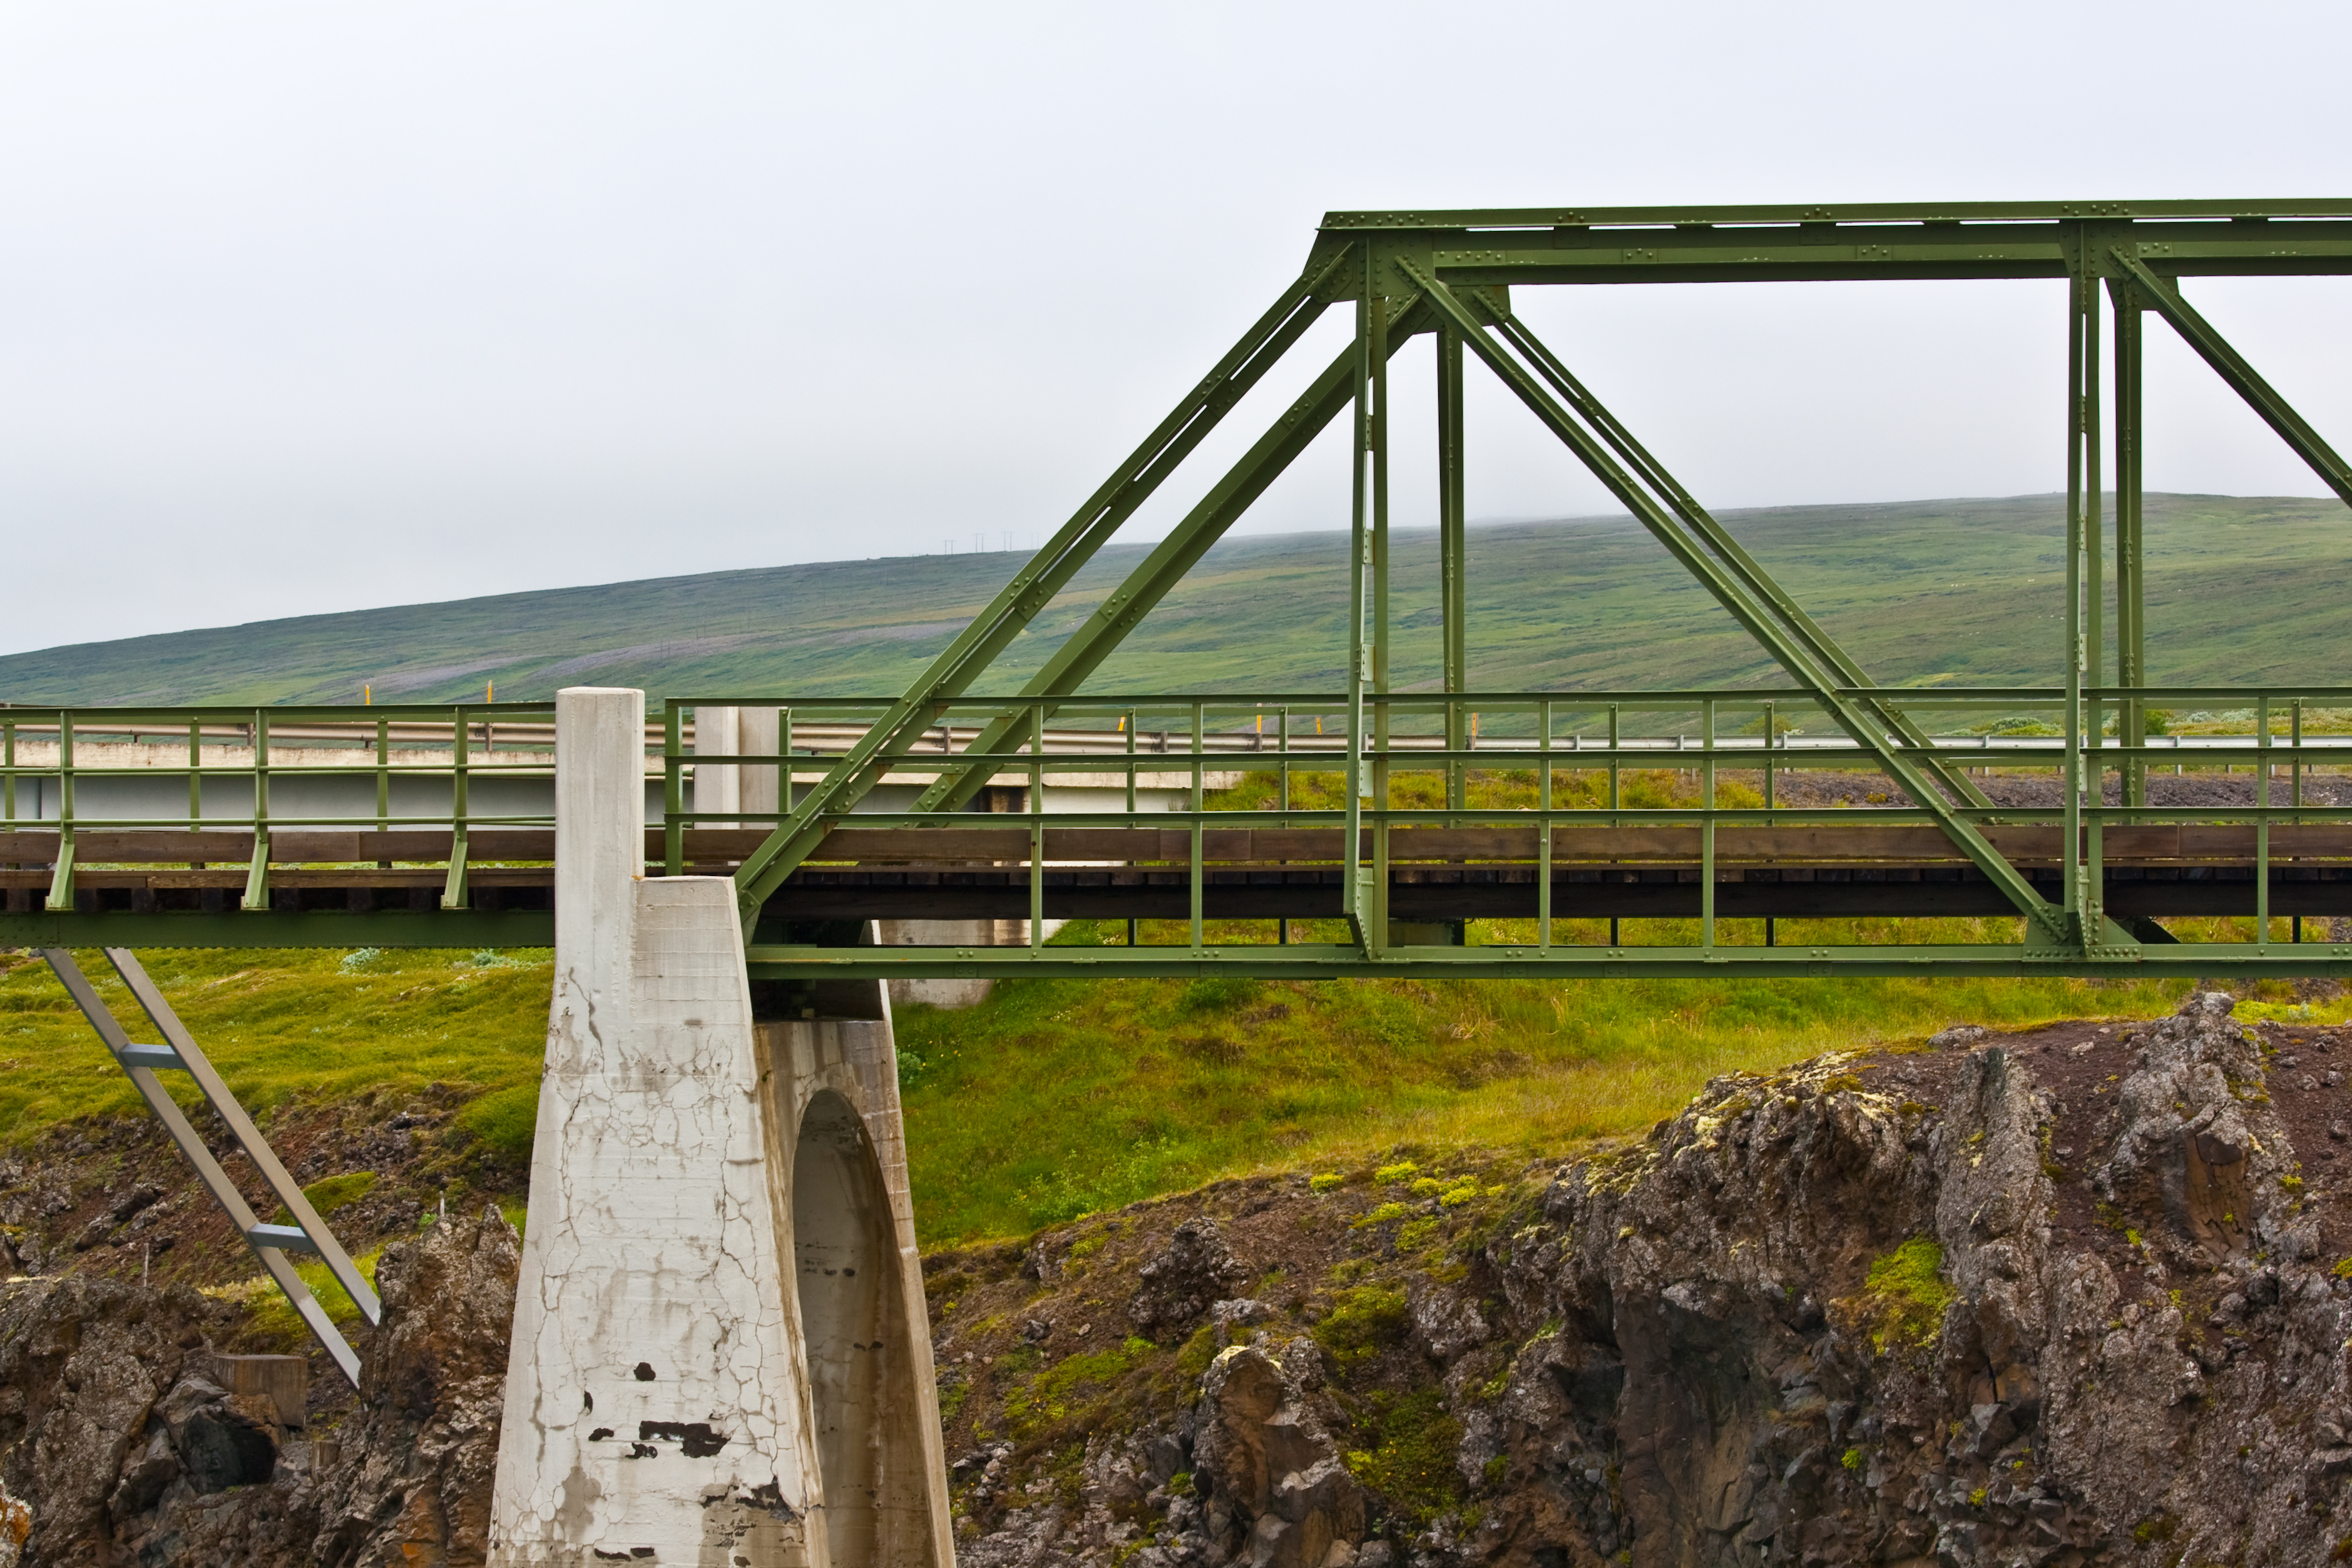 iceland-2015-138-of-173